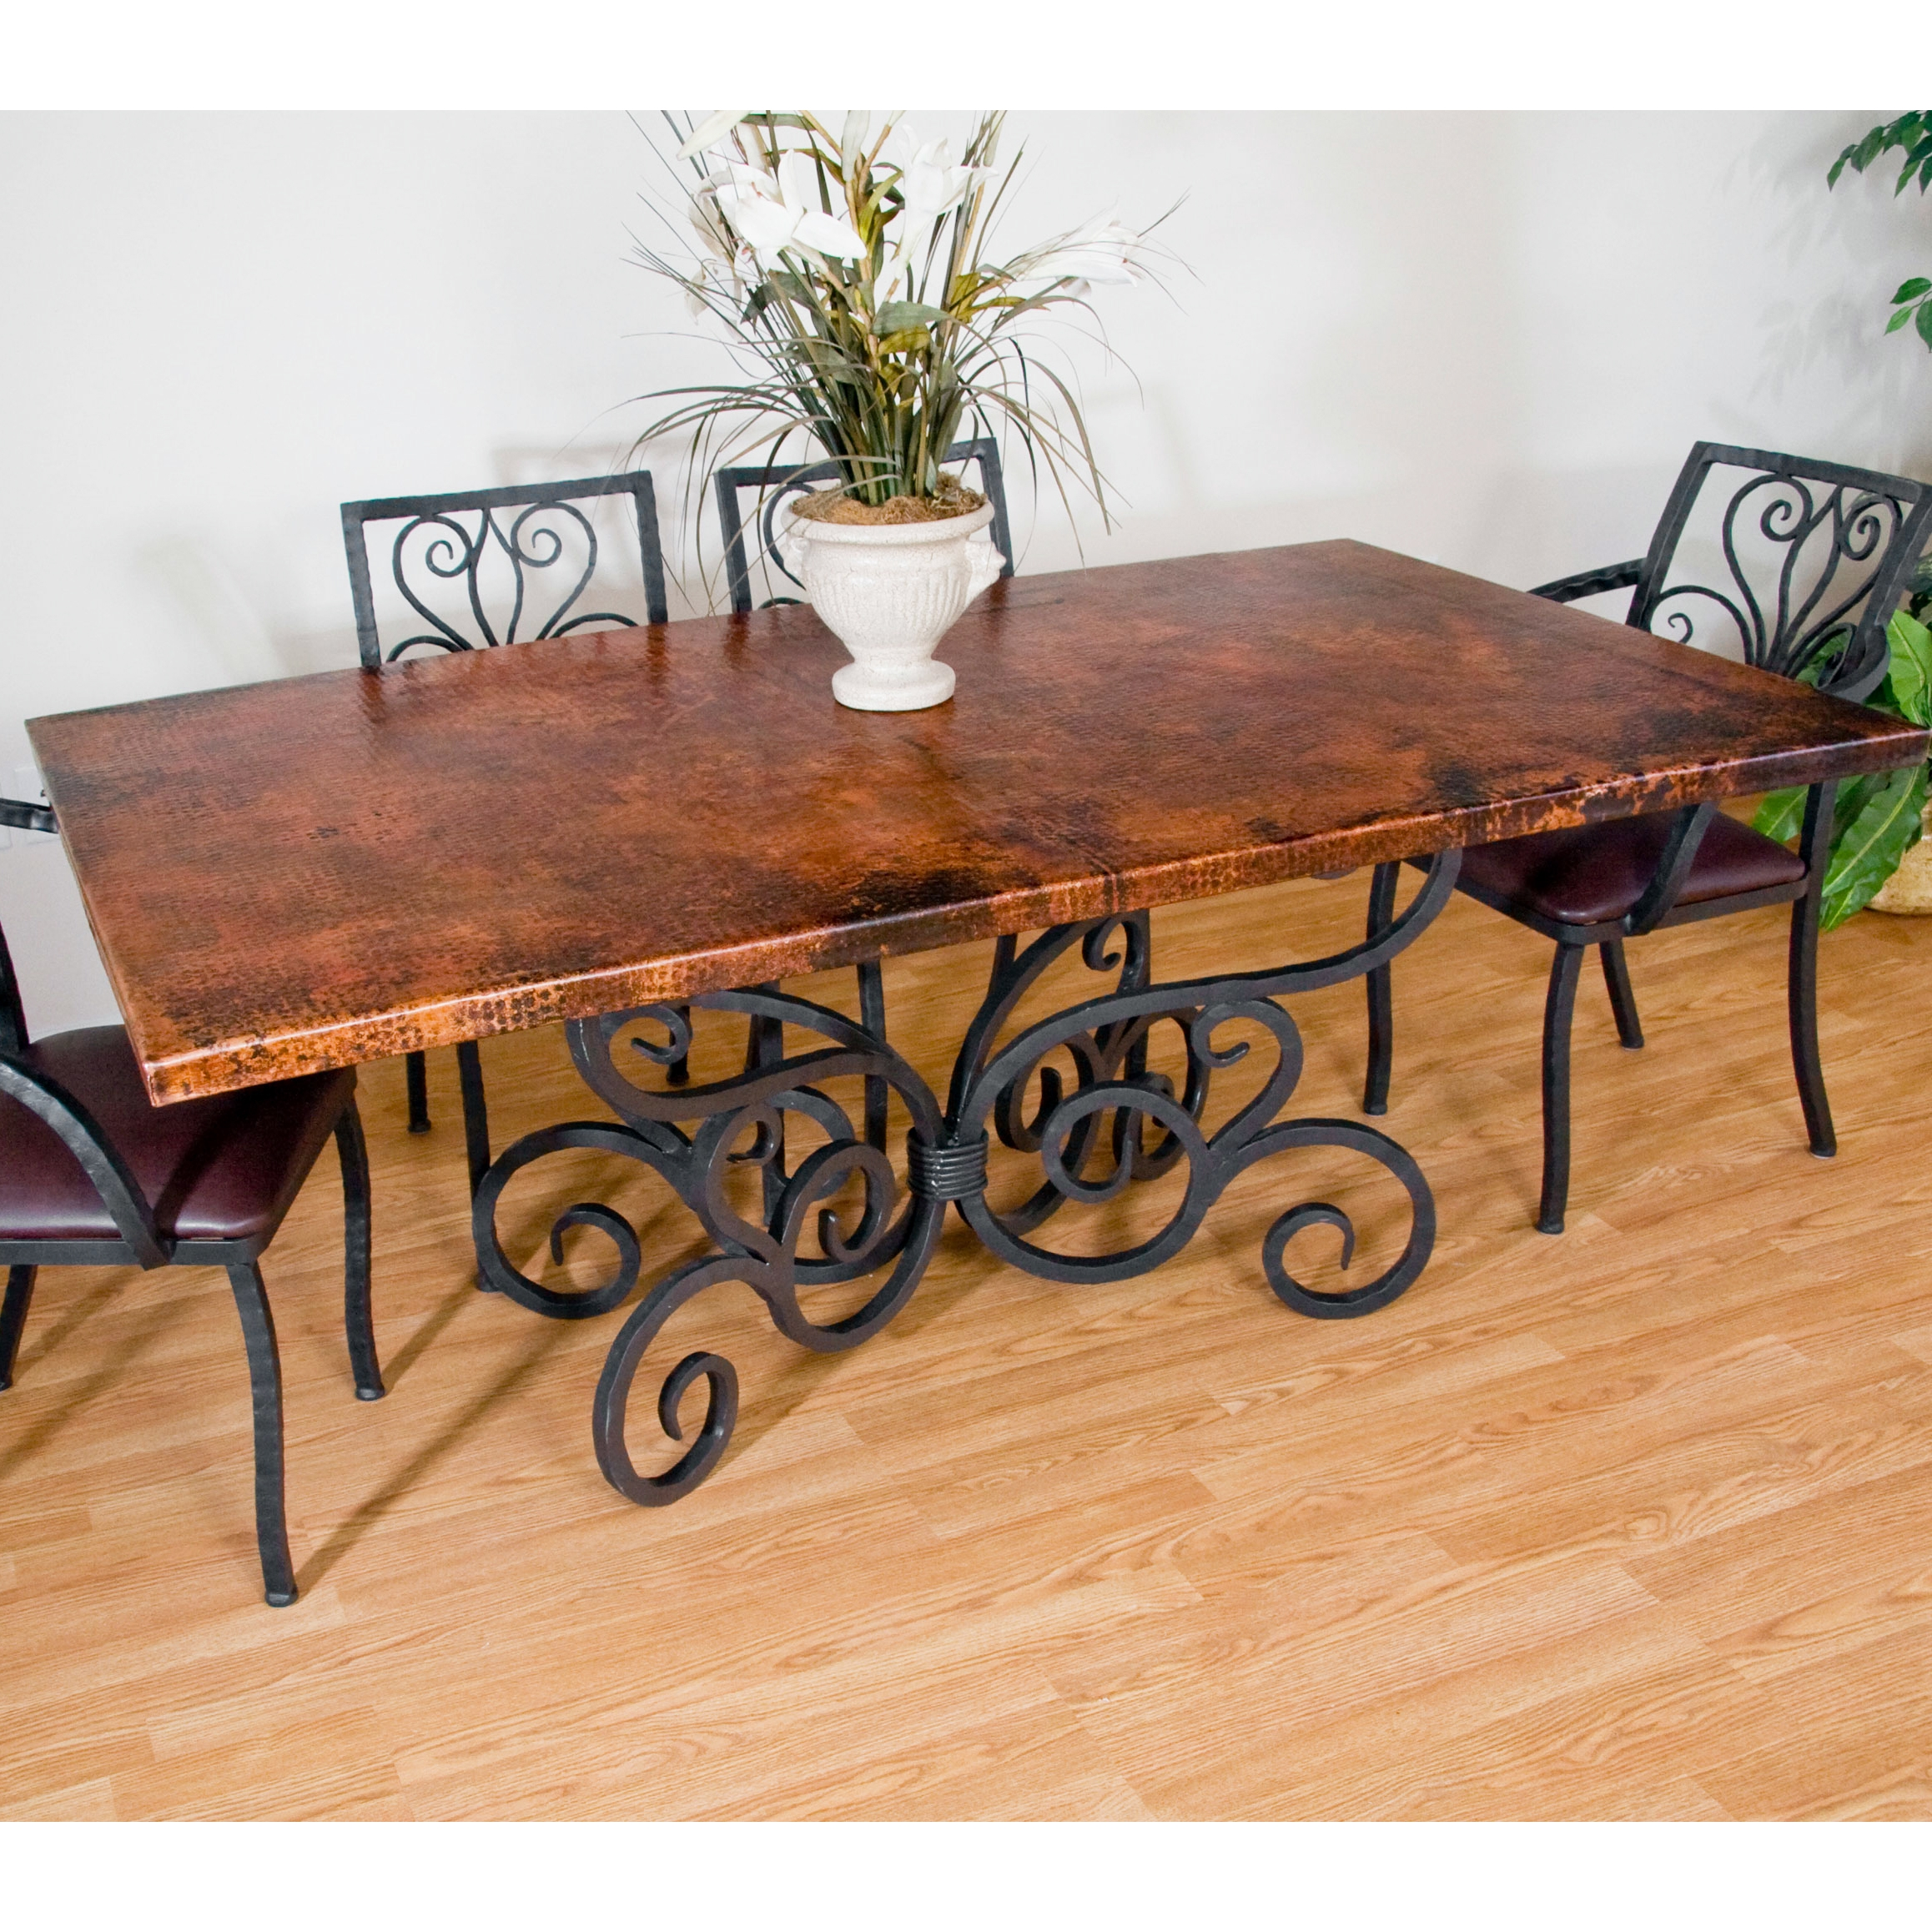 Traditional Wrought Iron Alexander Dining Table | 42in x 72in ...